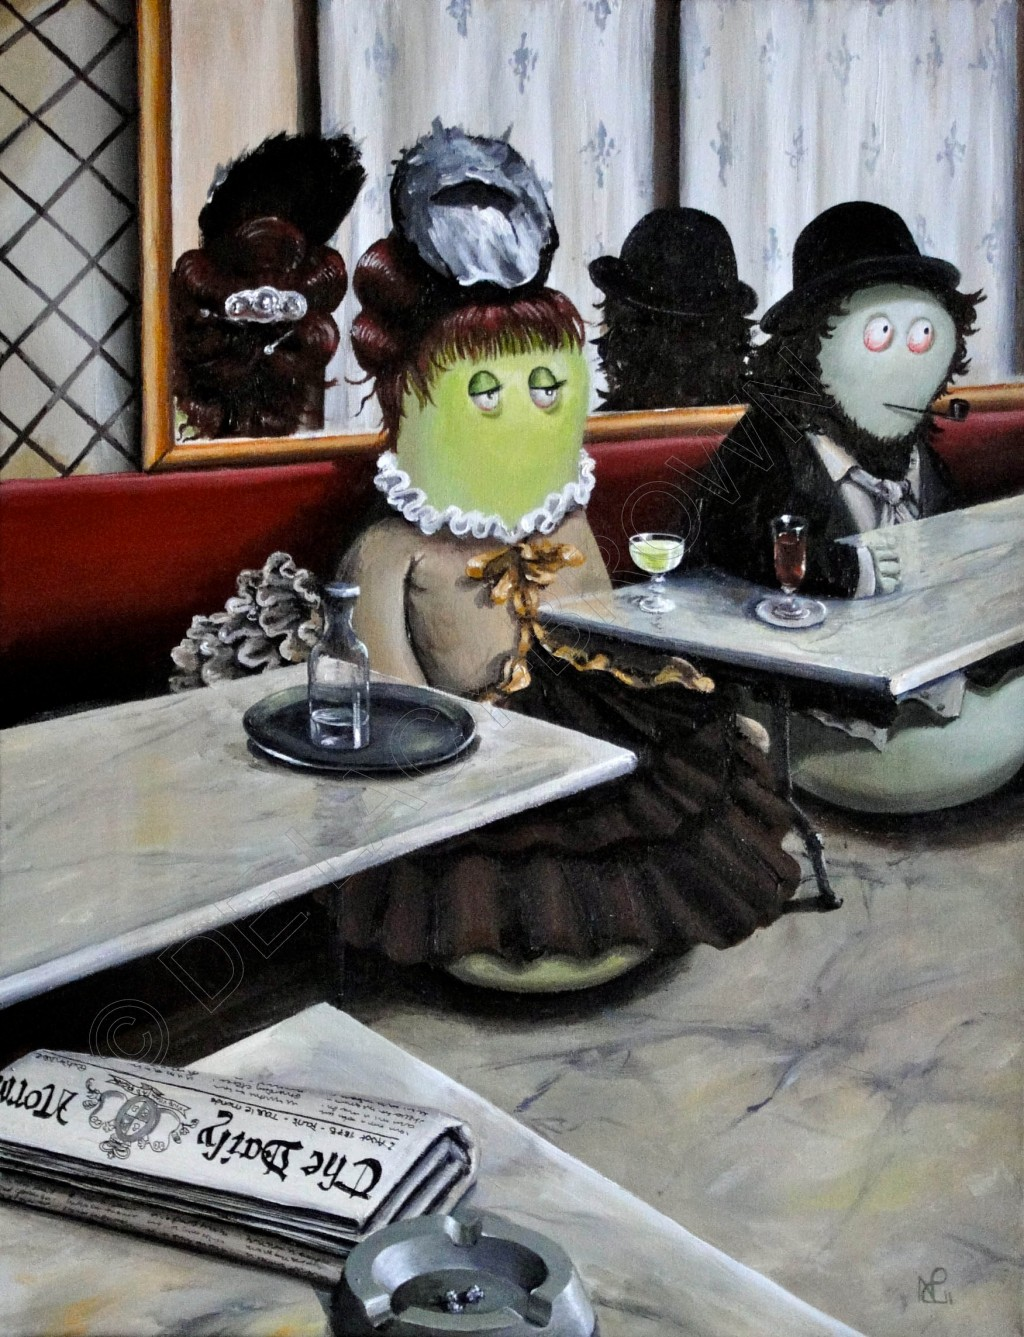 L'Absinthe Norm (acrylic on canvas, 2011 © Nicholas de Lacy-Brown)